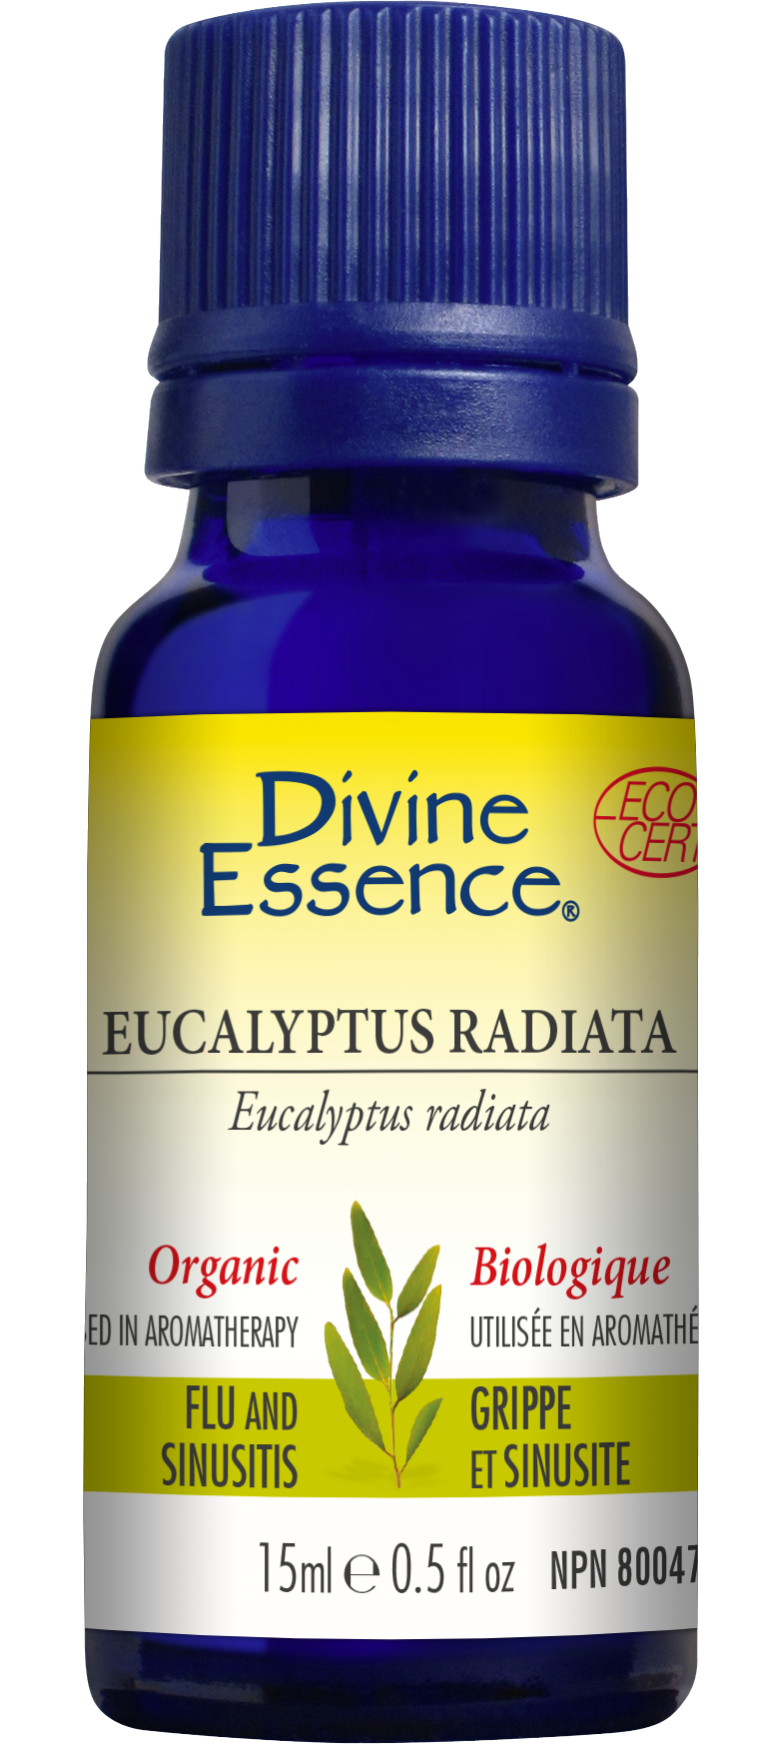 Eucalyptus Radiata 15ml